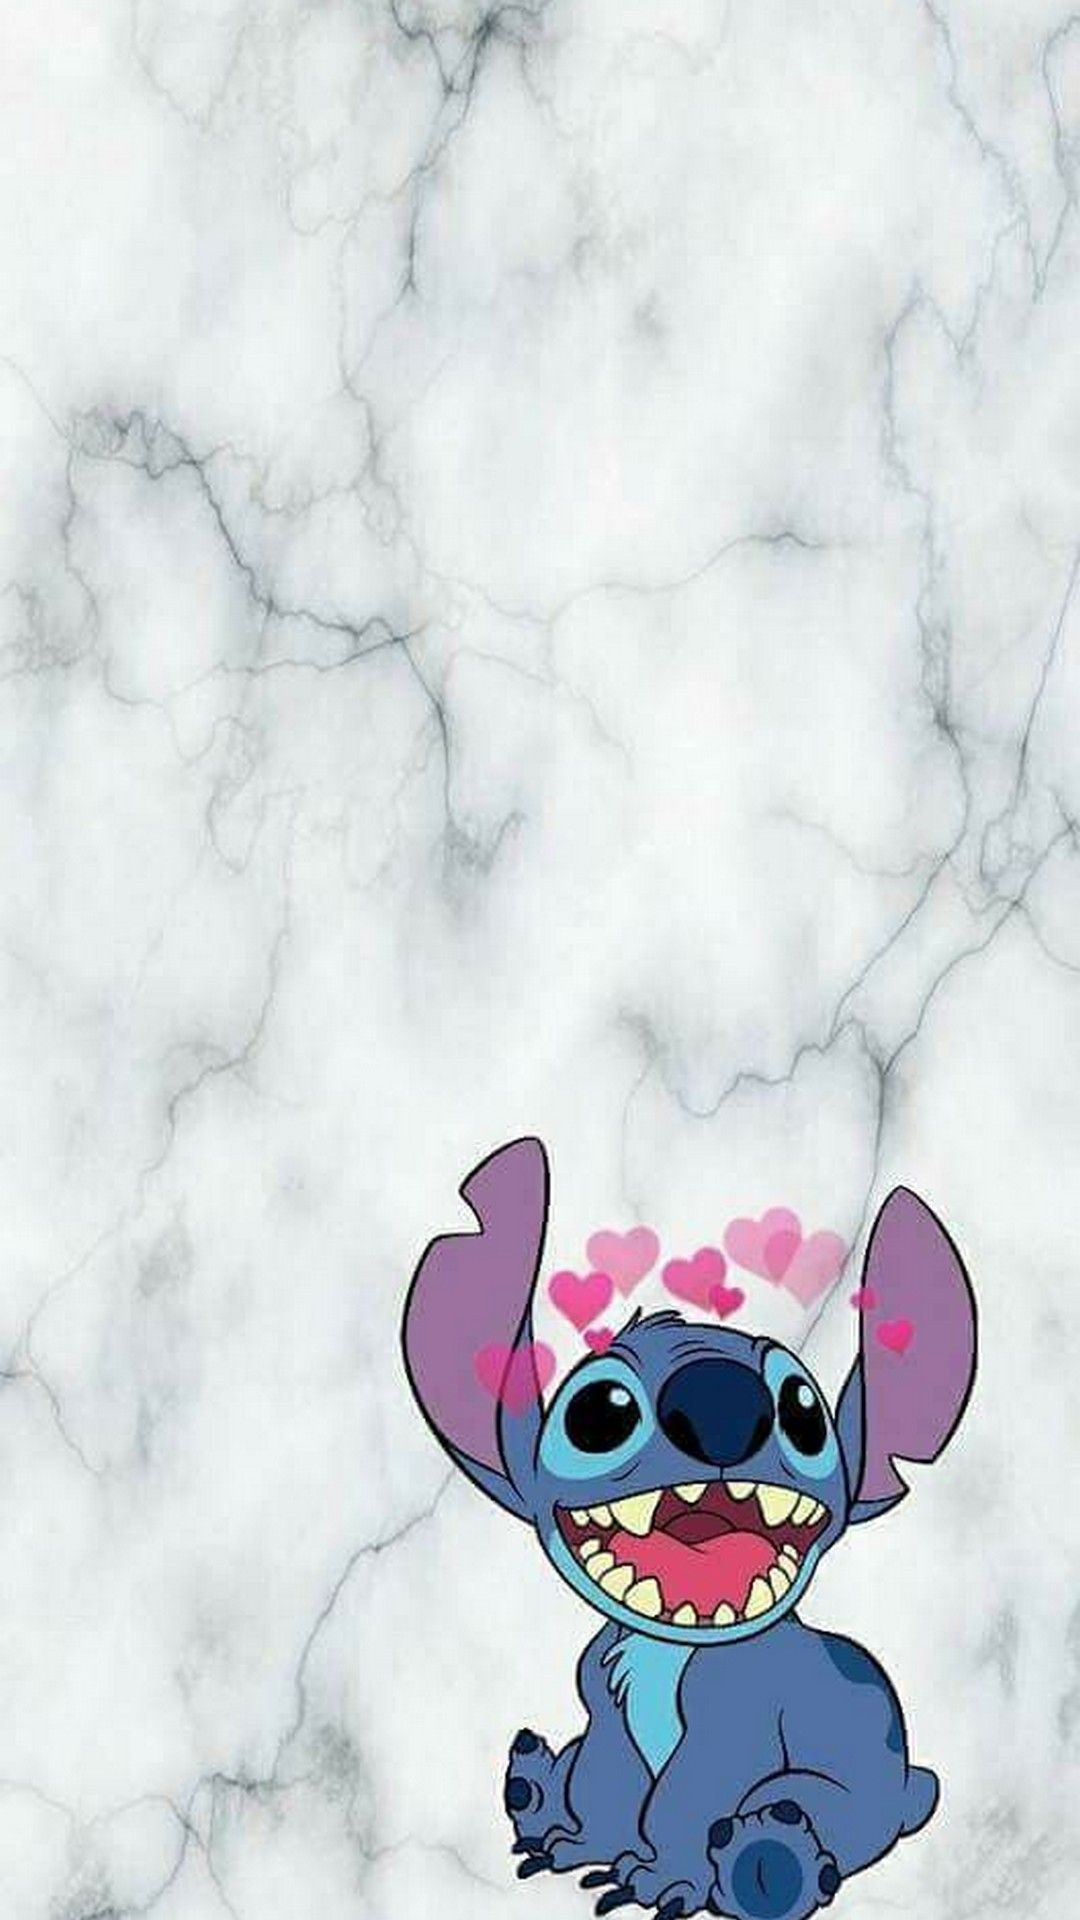 Stitch Wallpapers Picture For Iphone Wallpaper On Hupages Com If You Like It Dont Forget Disney Phone Wallpaper Wallpaper Iphone Disney Cute Disney Wallpaper